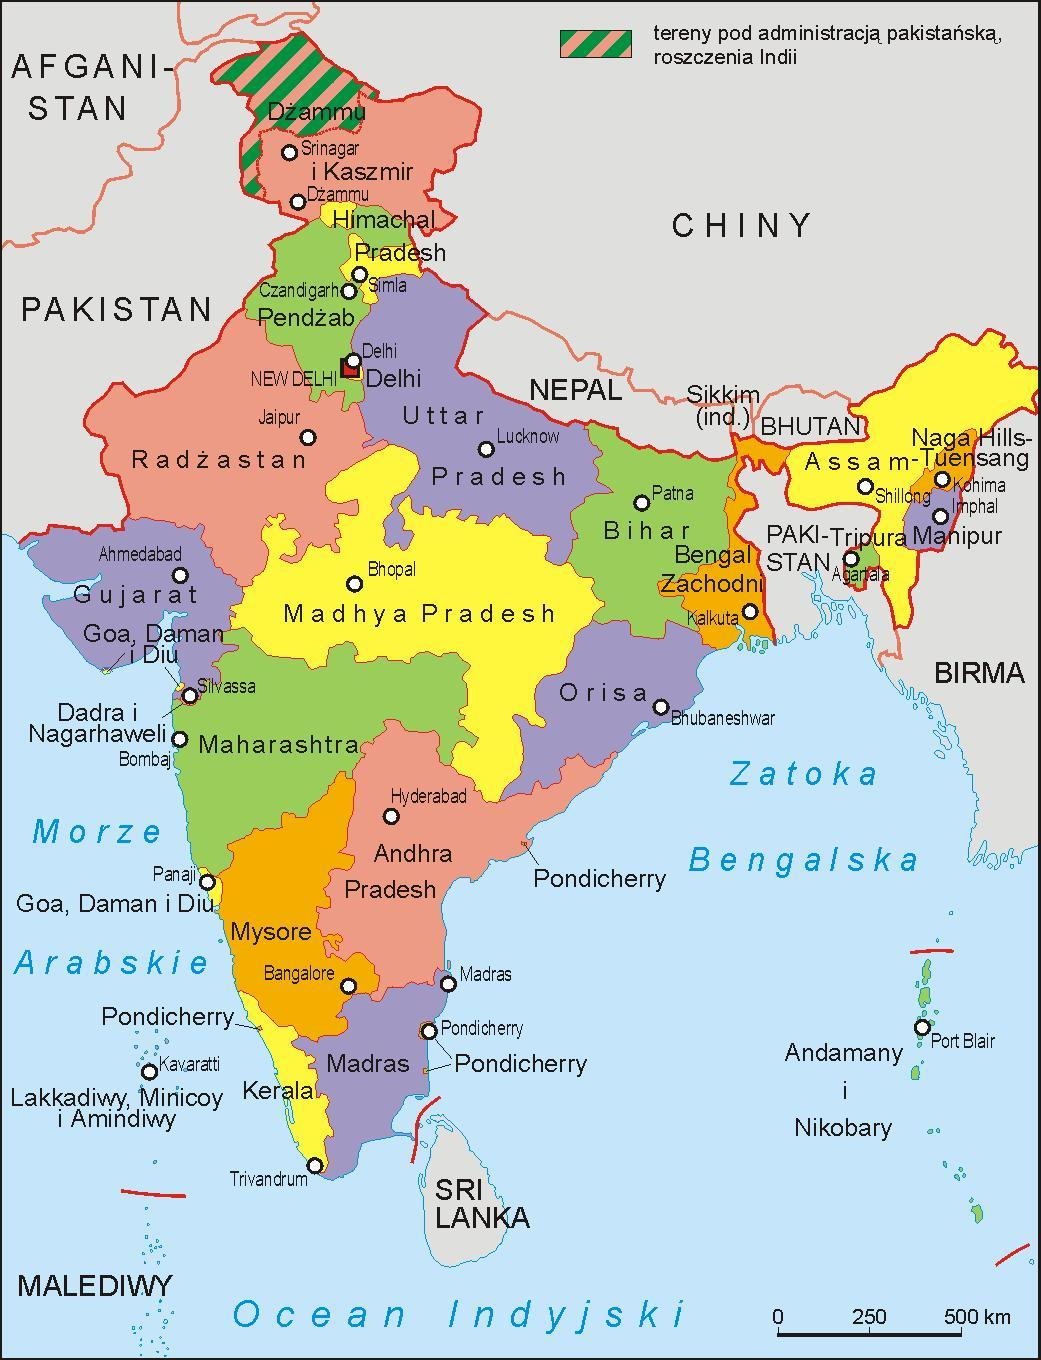 Learn and write the states of India and their capitals and show them on